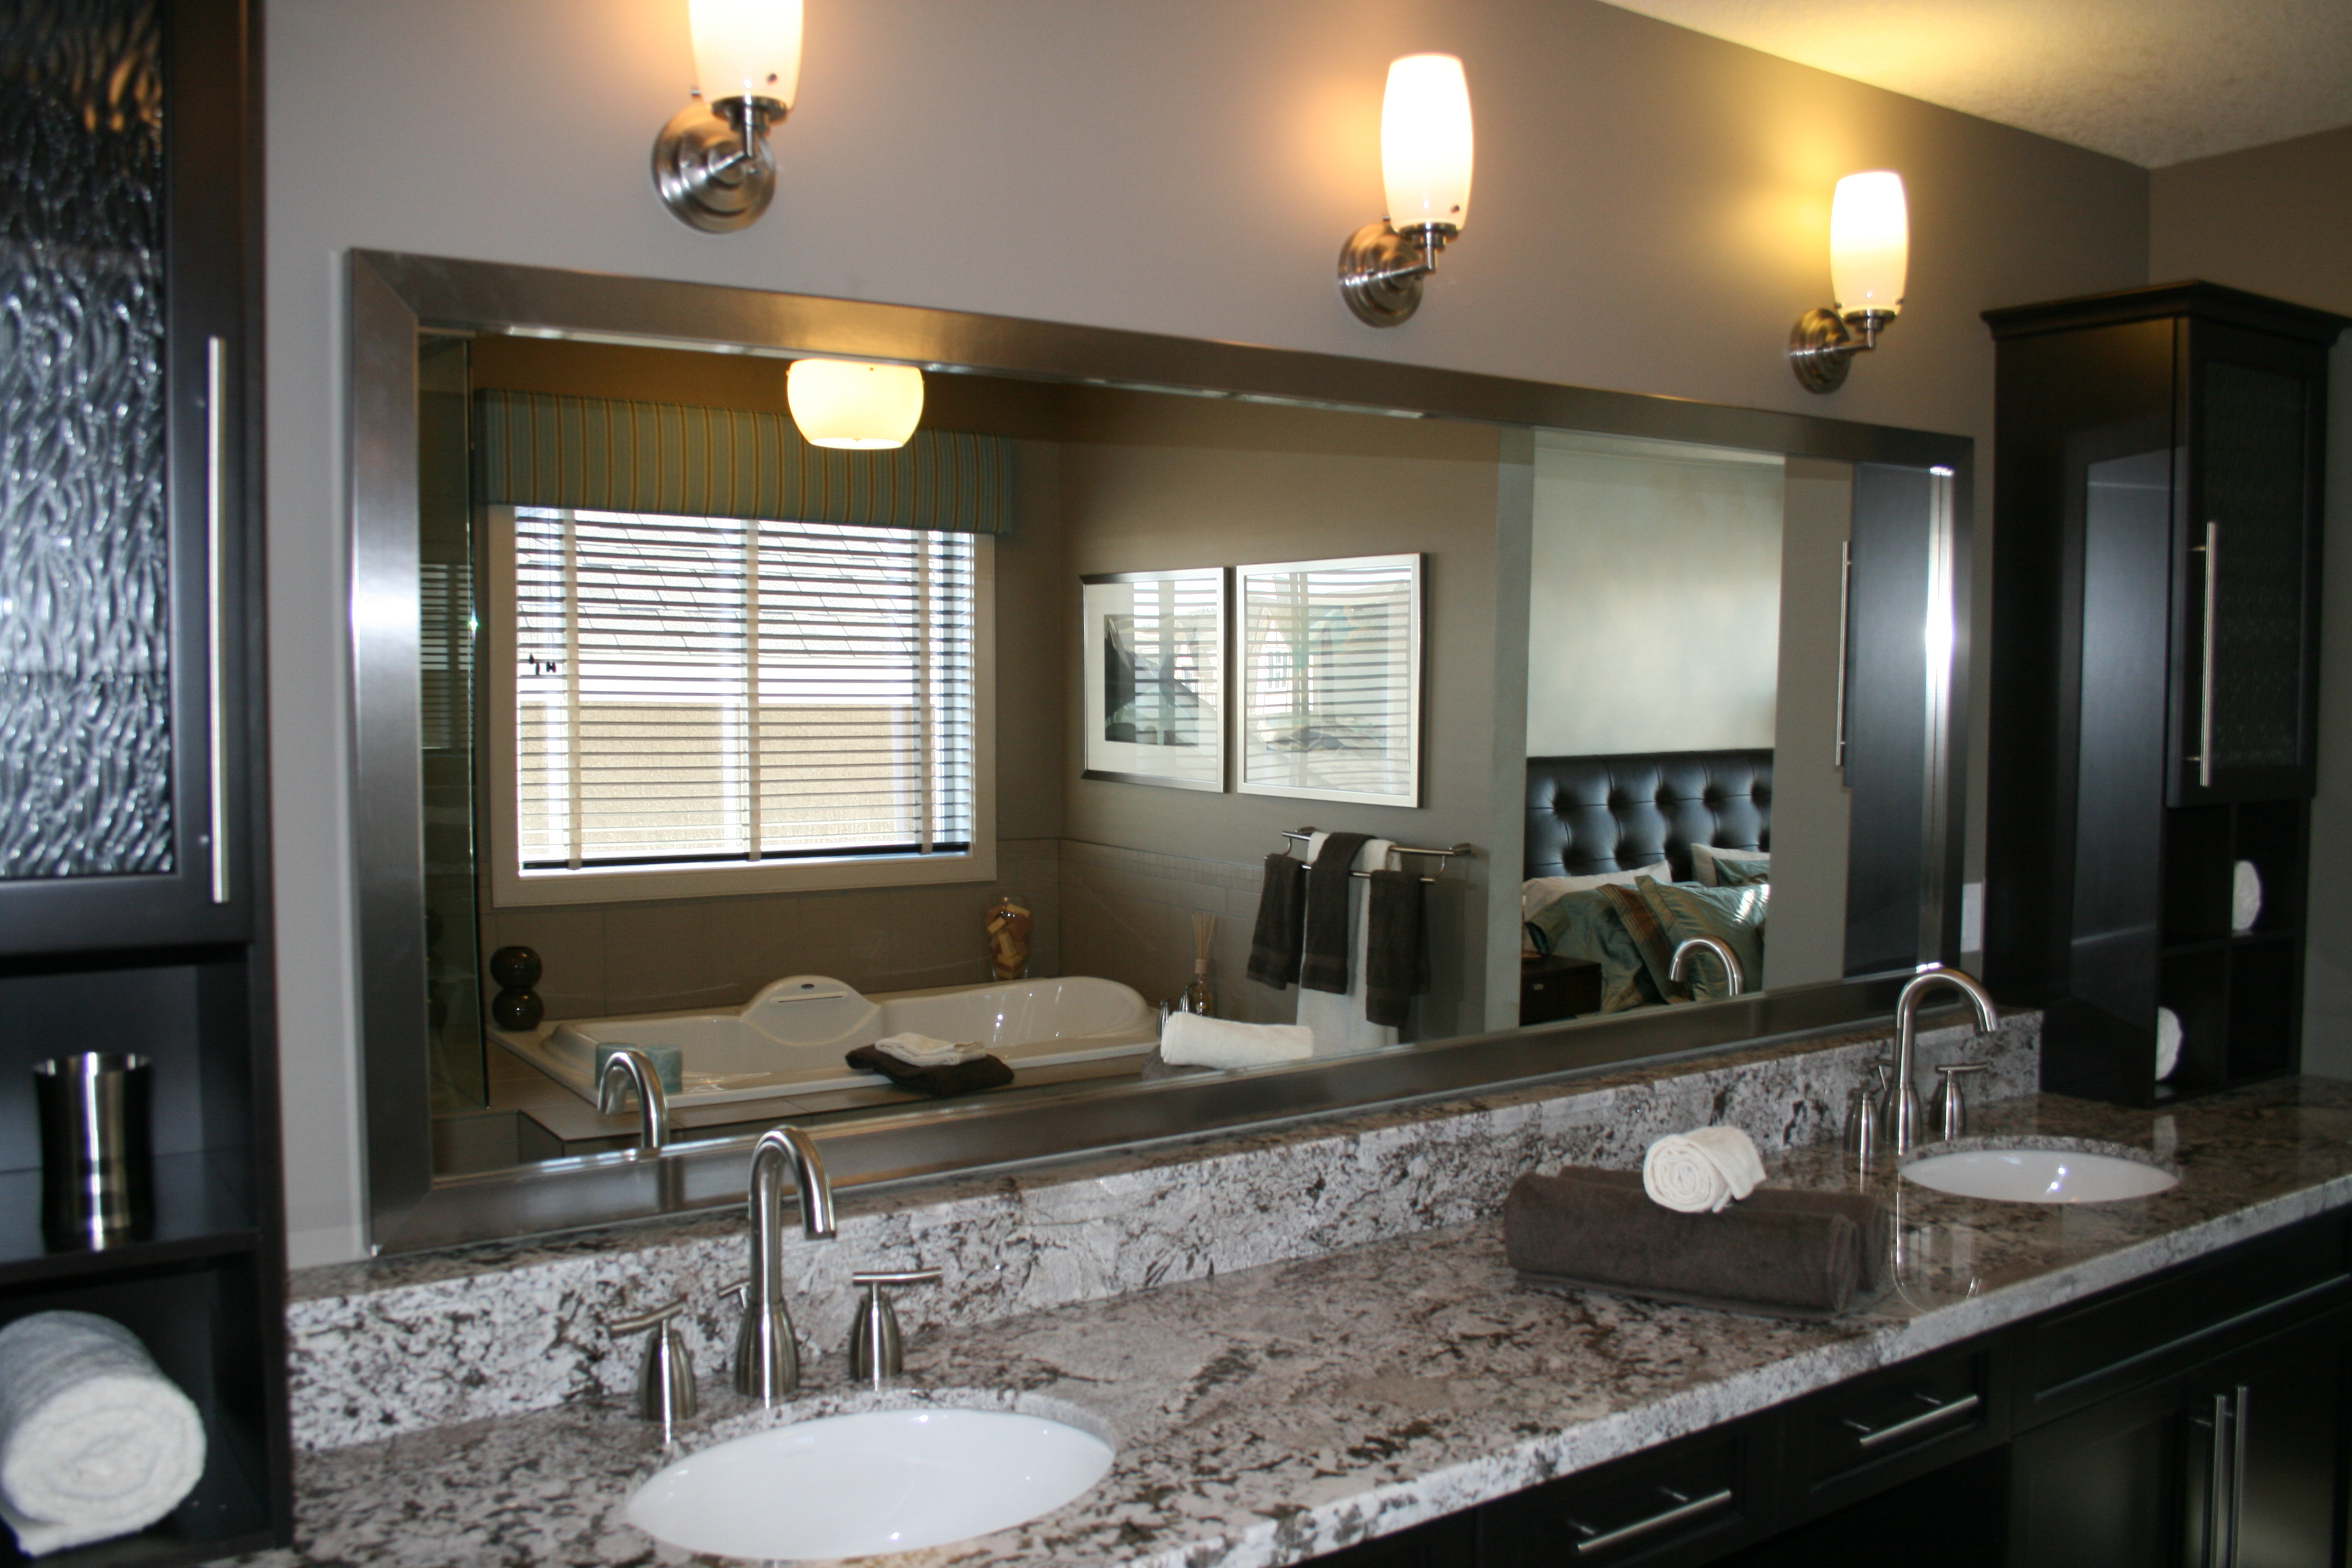 Latest Delightful Framed Mirrors For Bathrooms Ideas – Kiakiyo For Large Framed Wall Mirrors (Gallery 20 of 20)